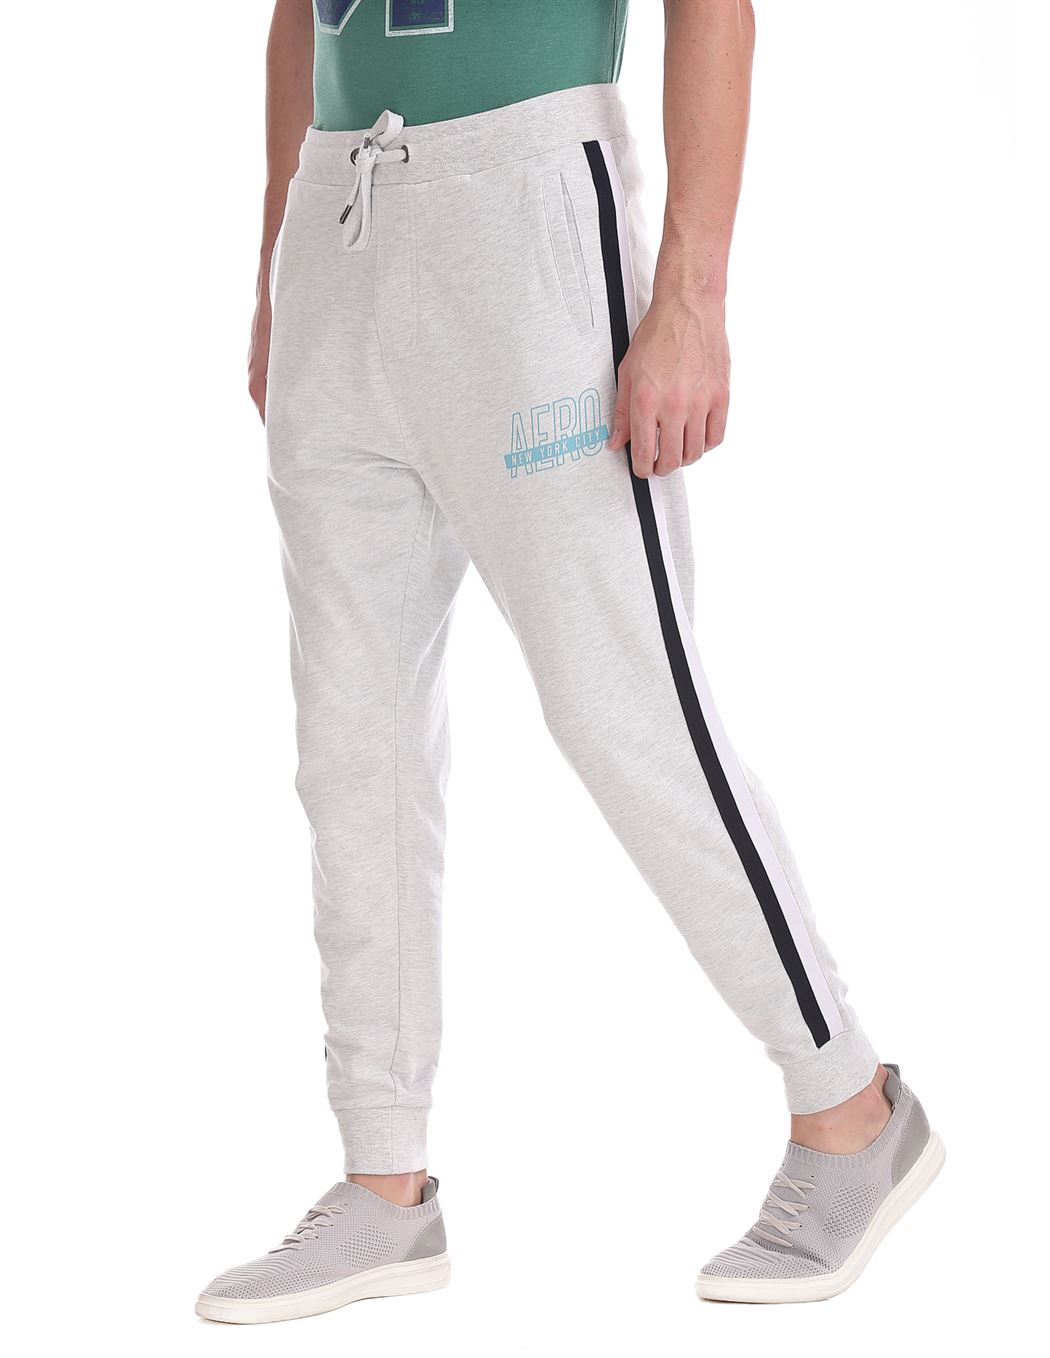 Aeropostale Men Casual Wear Solid Track Pant